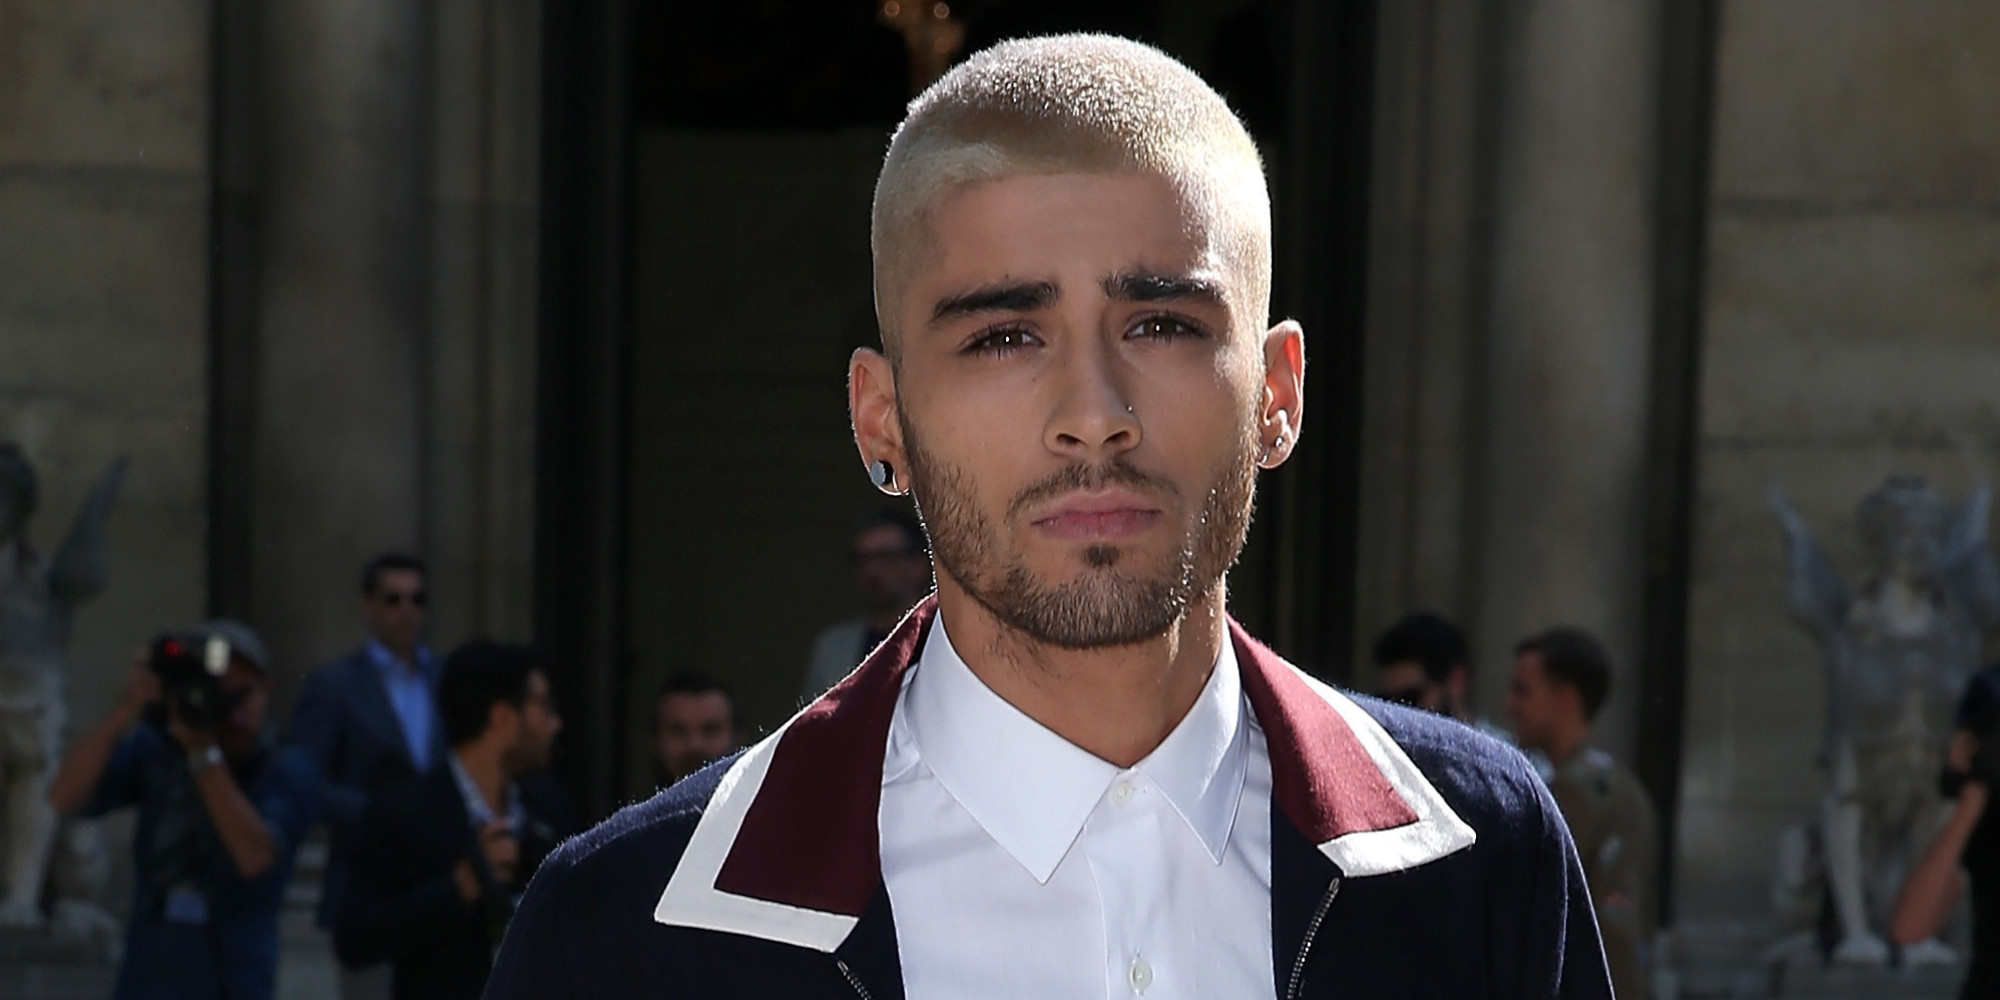 PARIS, FRANCE - JUNE 24: Zayn Malik attends the Valentino Menswear Spring/Summer 2016 show as part of Paris Fashion Week on June 24, 2015 in Paris, France. (Photo by Pierre Suu/Getty Images)